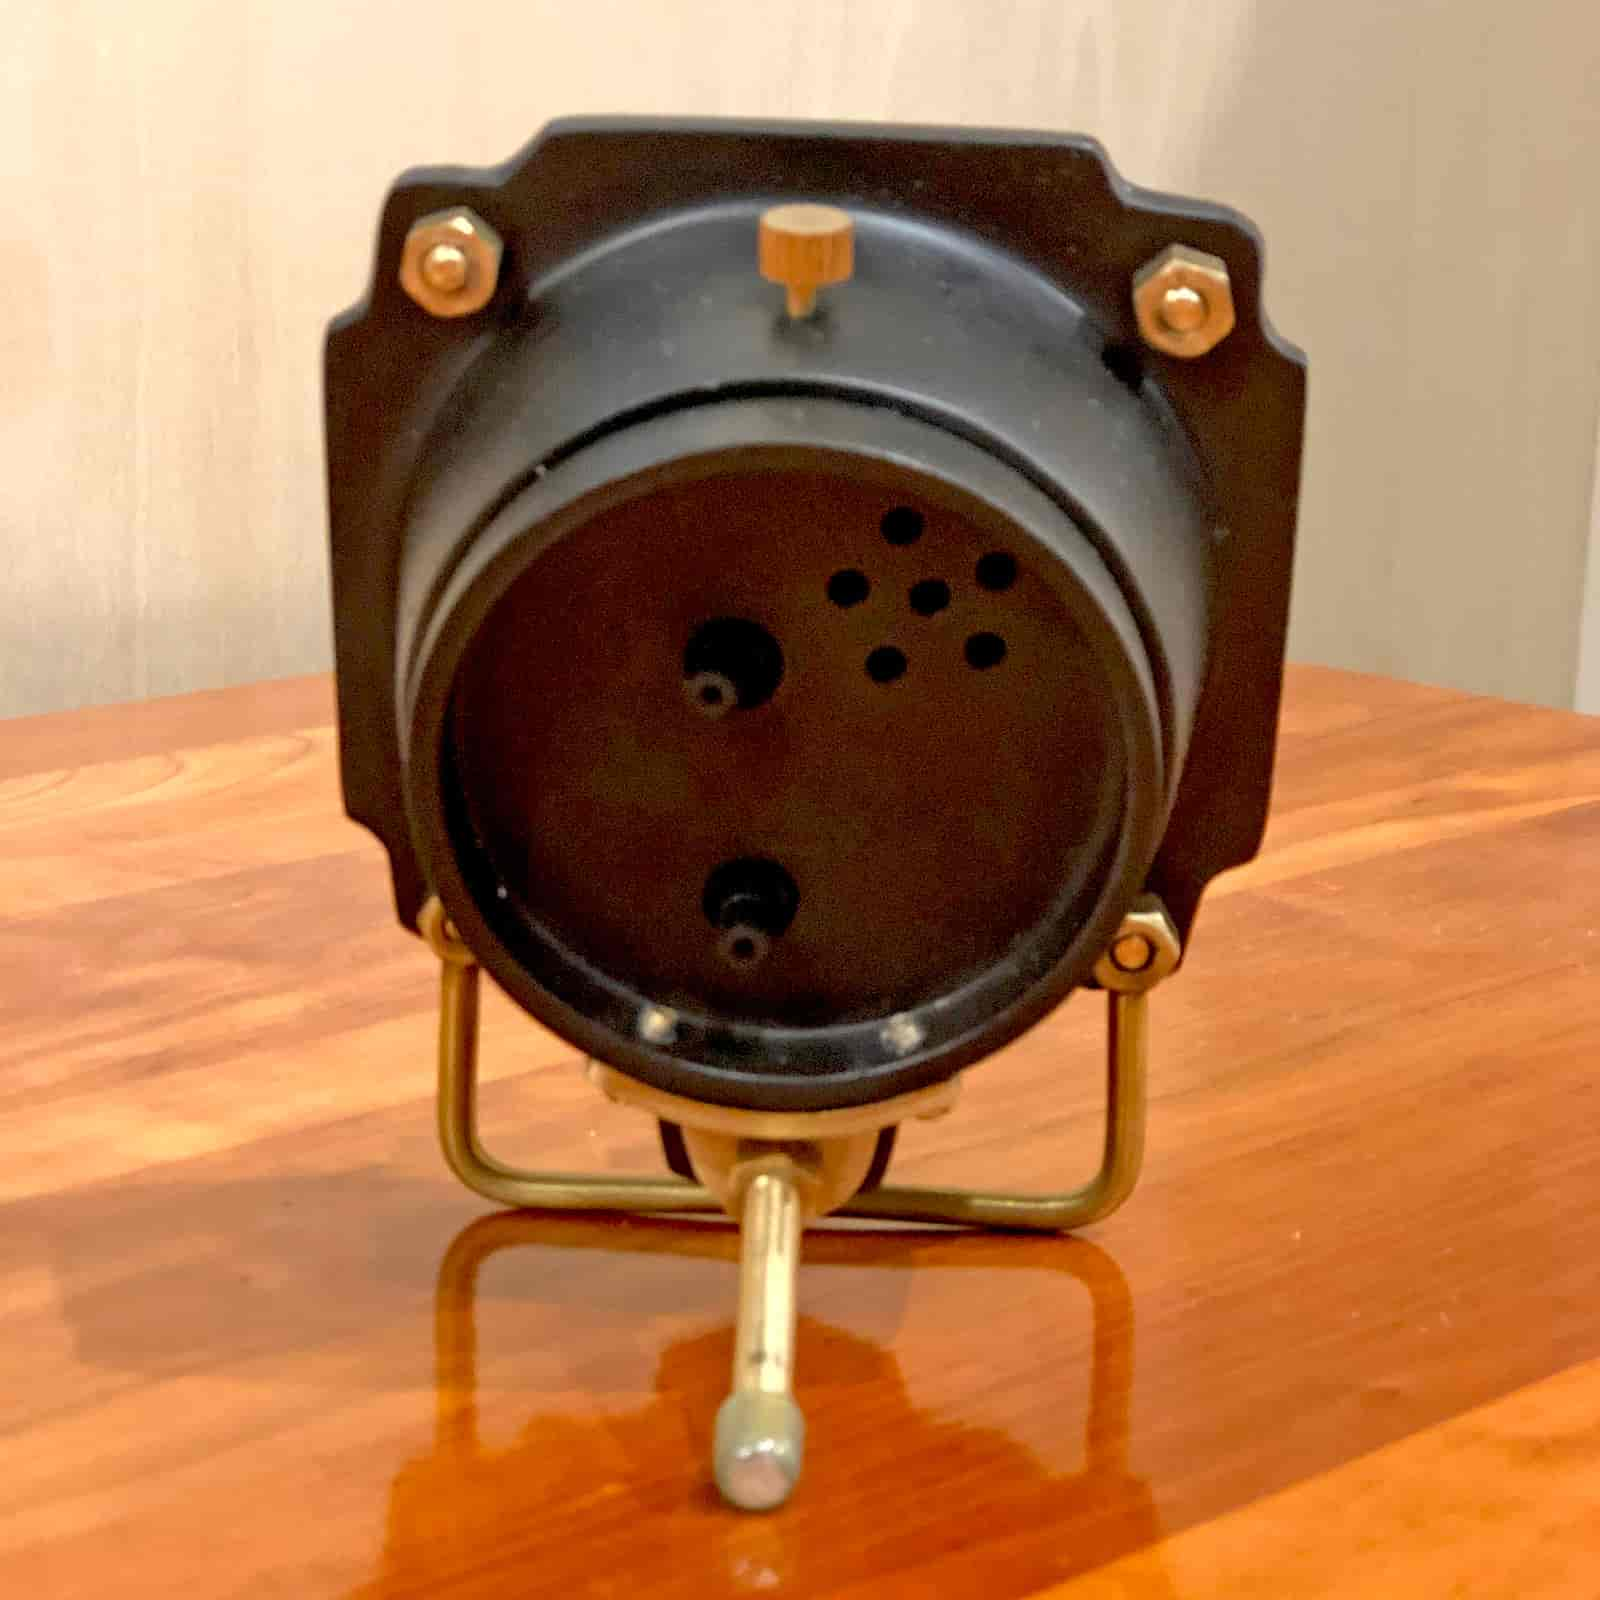 Back view of Rosie's Workshop Altimeter Alarm Clock in black finish. A wonderful retro alarm clock design based on altimeters from WWII fighter planes.